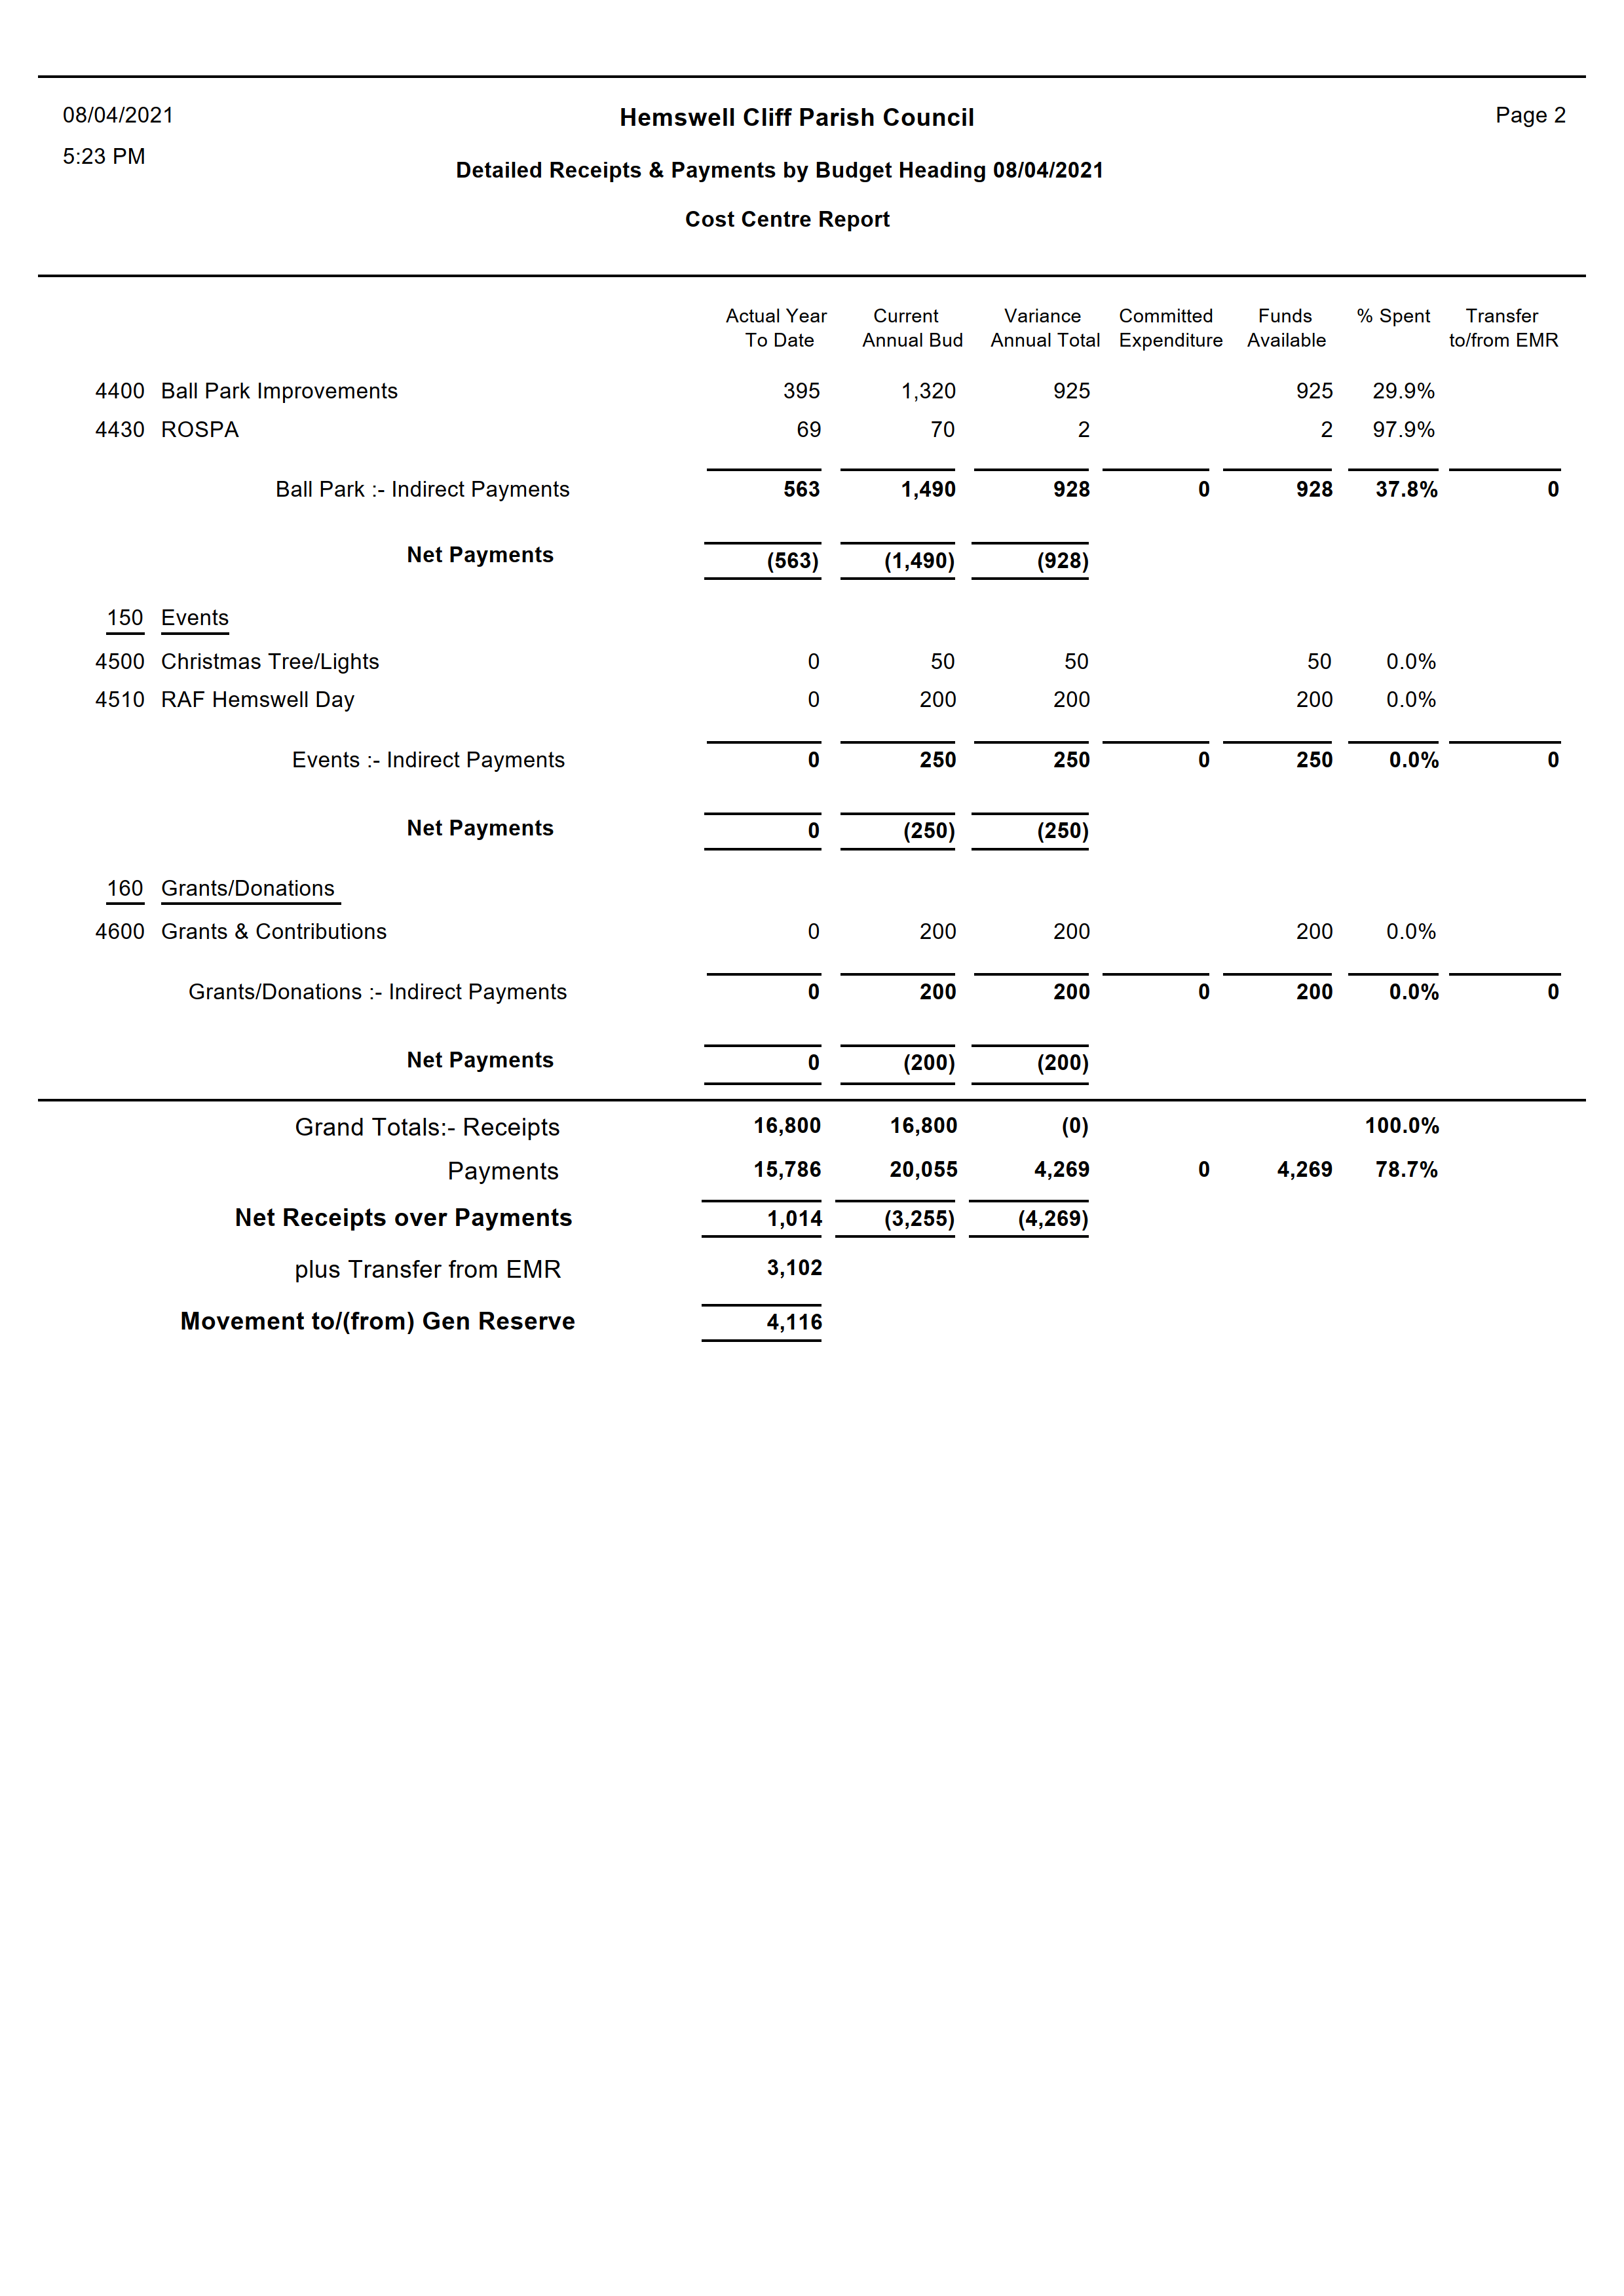 Detailed_Receipts___Payments_by_Budget_Heading_08_04_2021_2.png